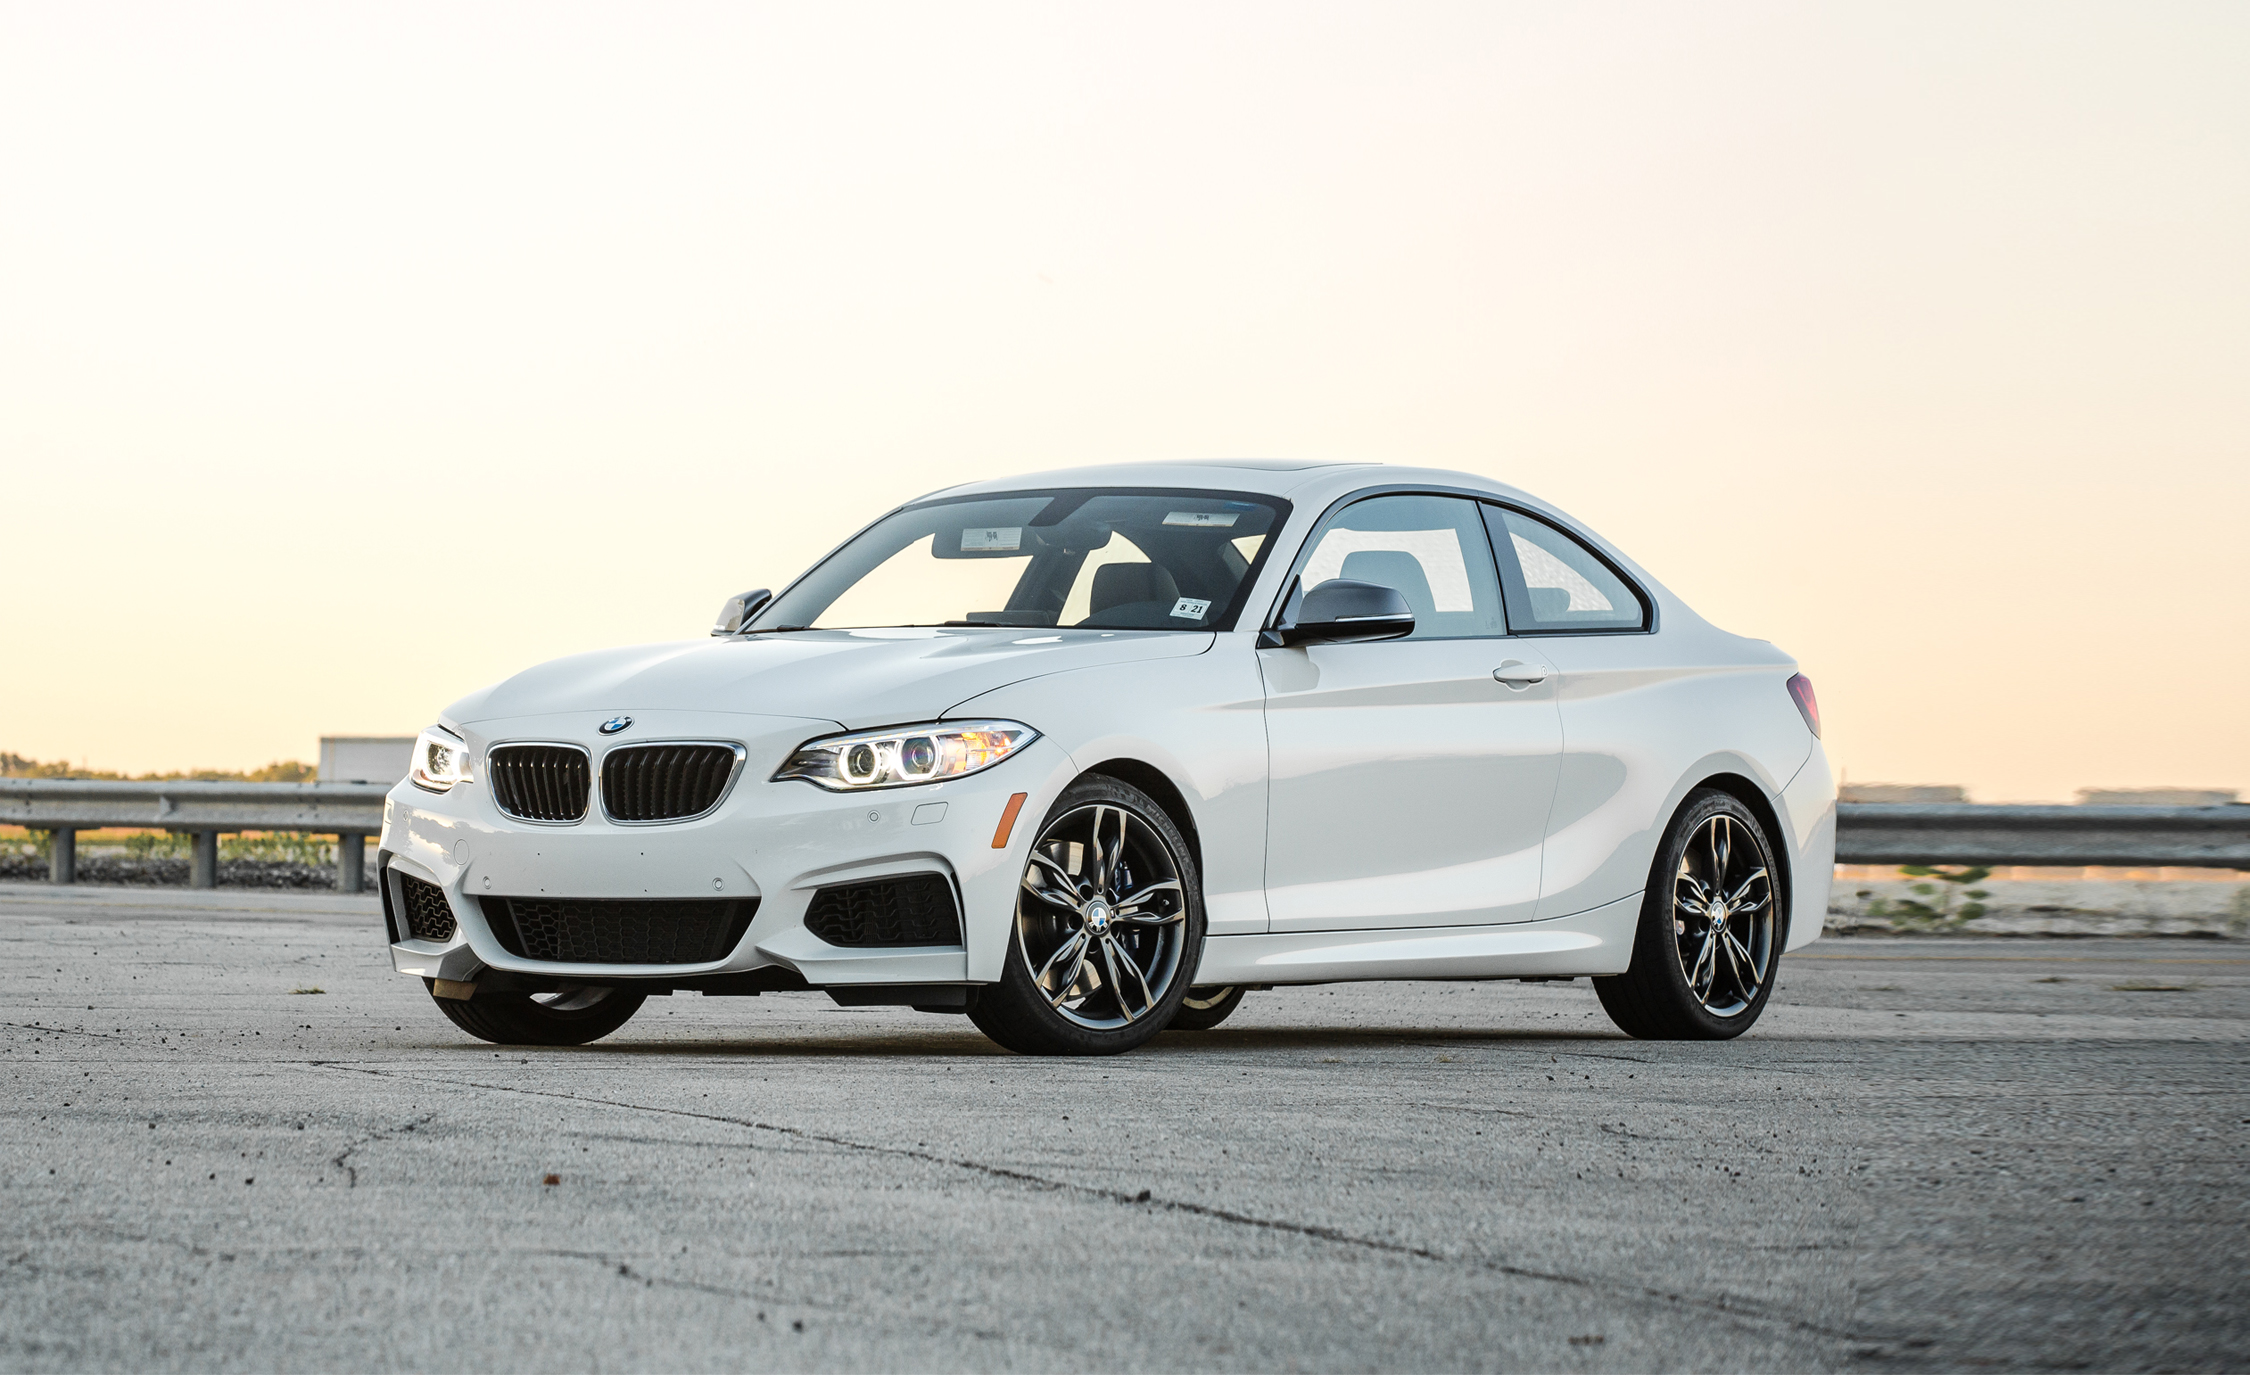 2017 BMW M240i Coupe Automatic Color White (Photo 34 of 36)